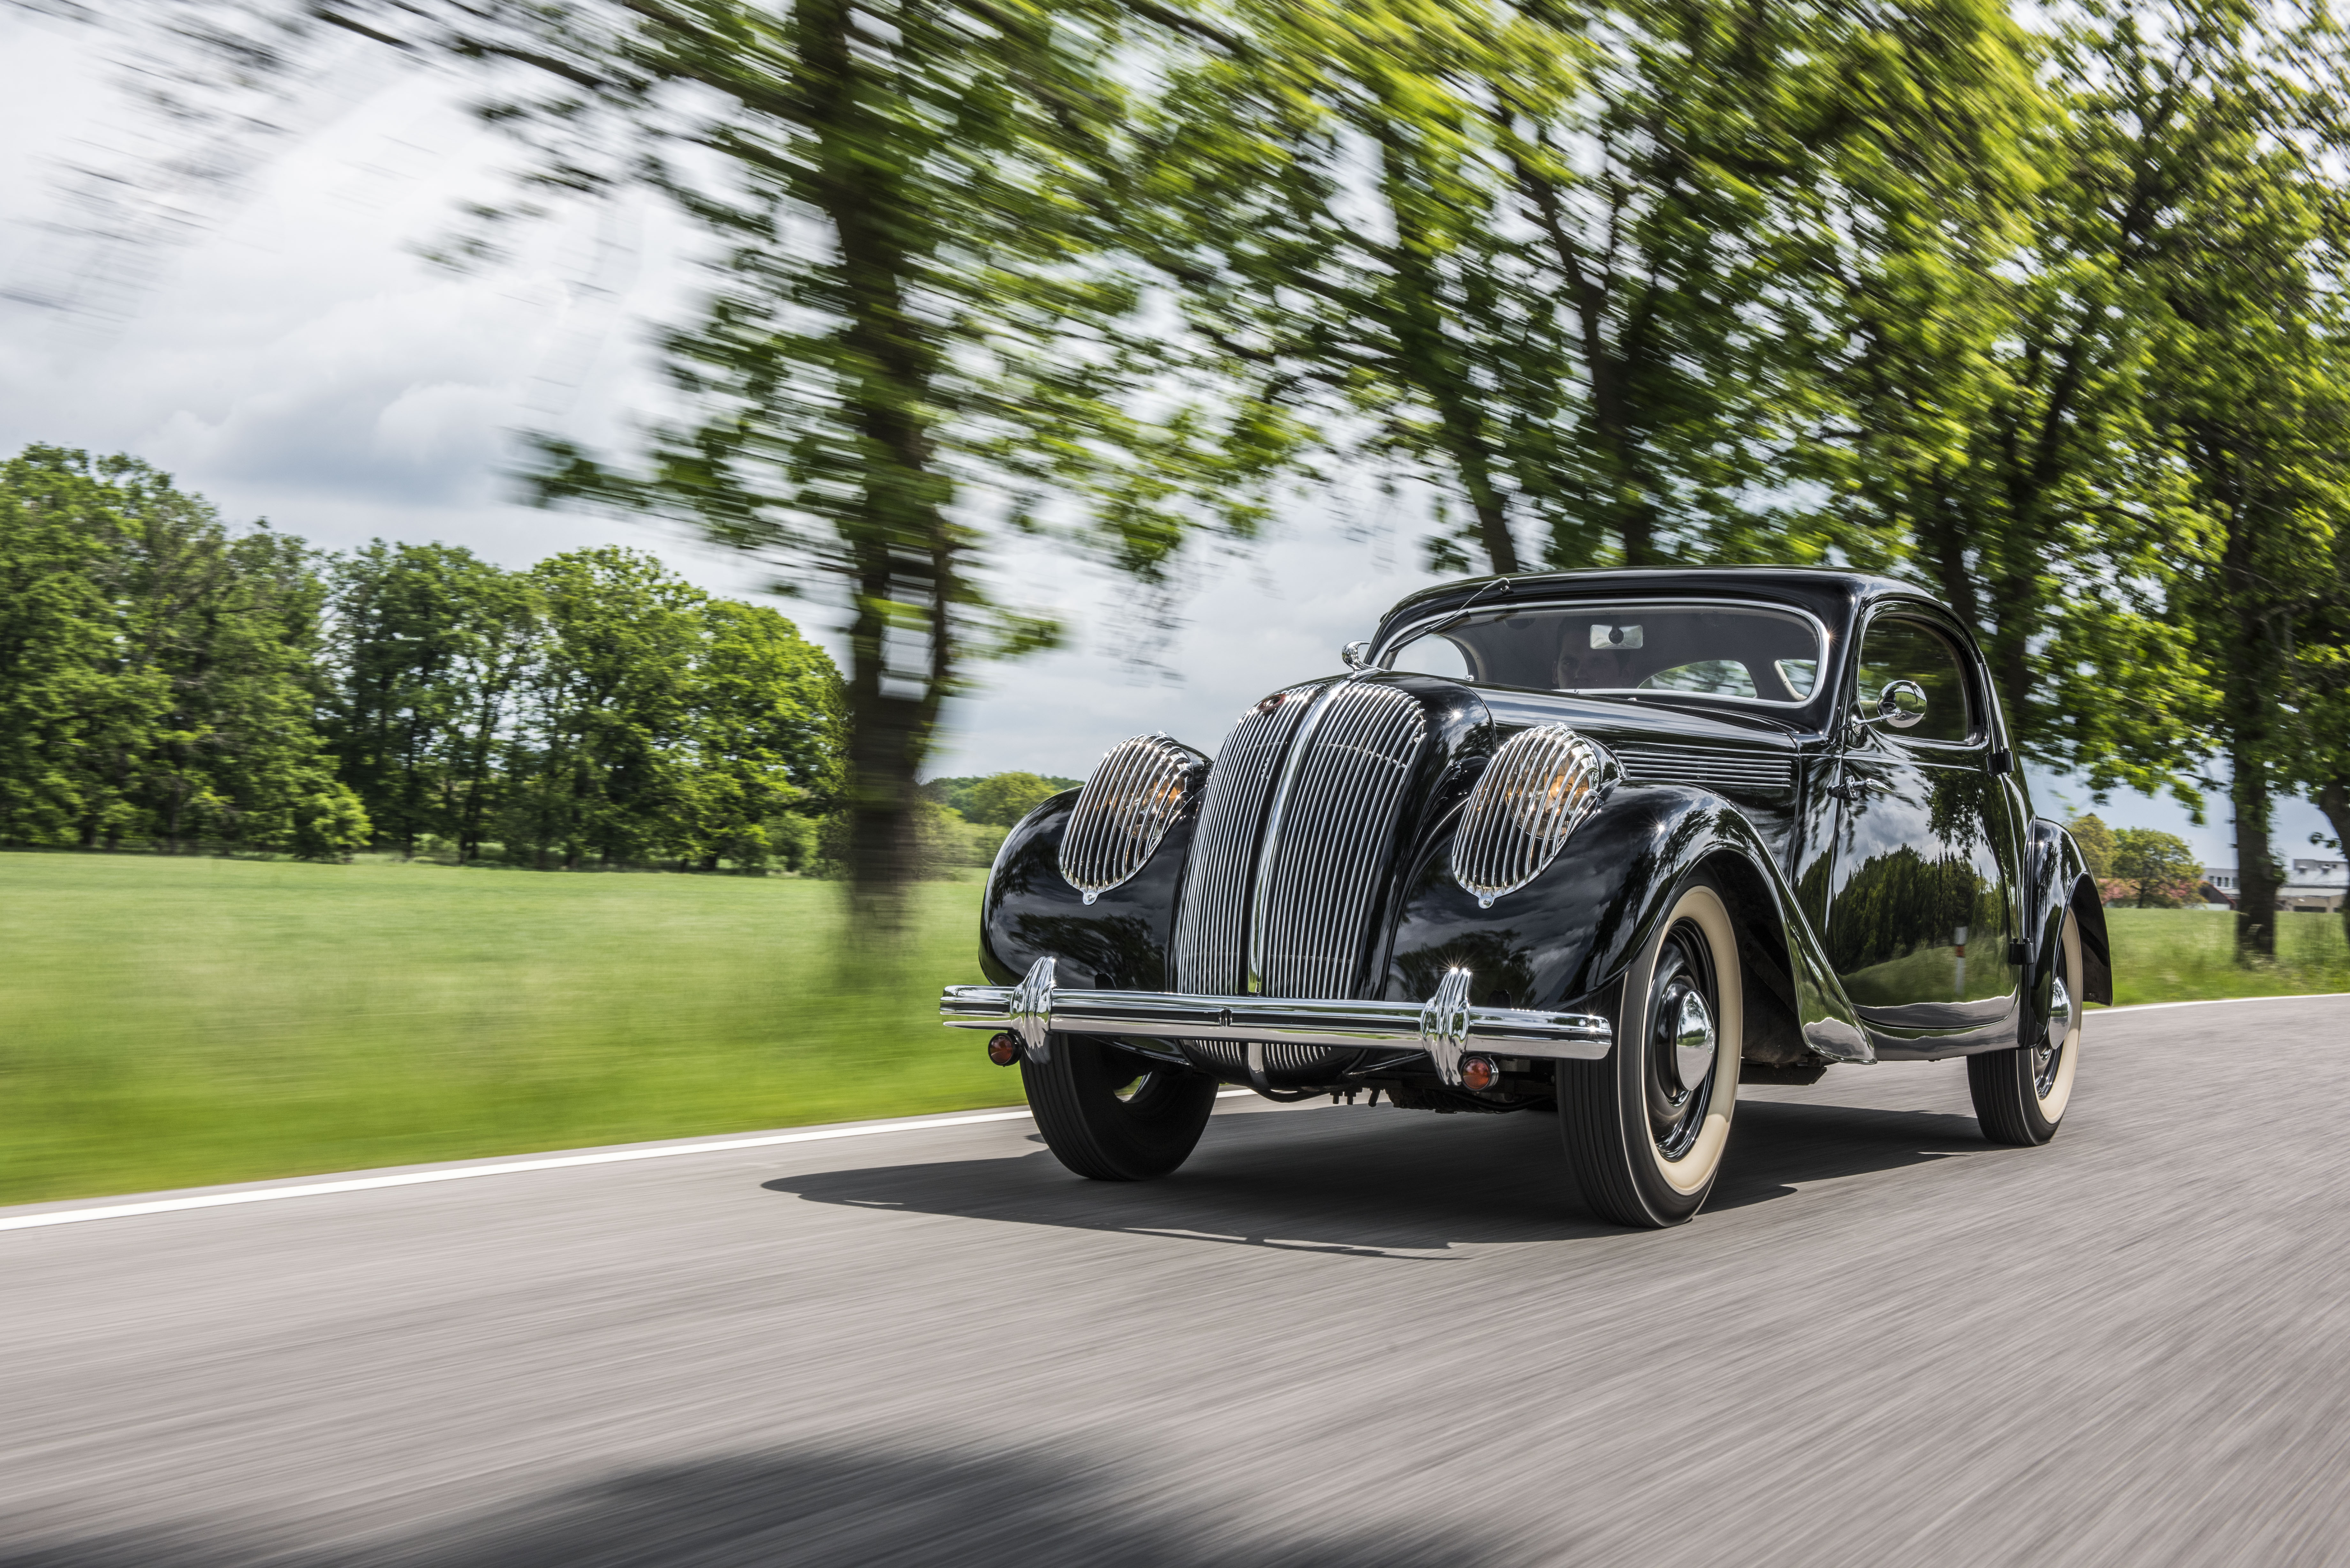 125 years of SKODA: A journey through time with twelve automotive milestones from the company's history - Image 5